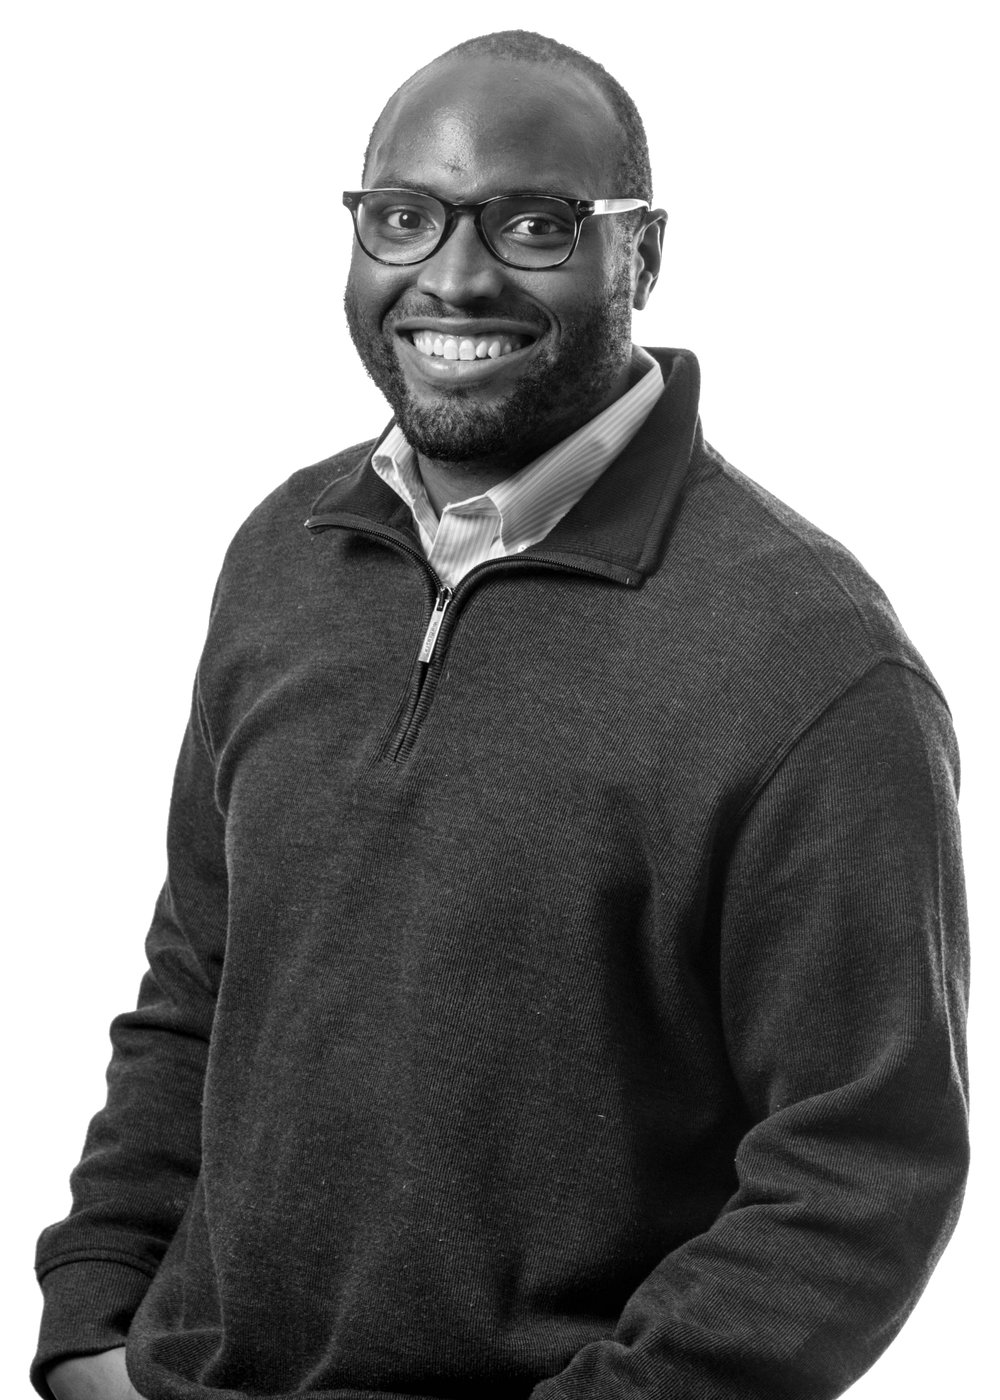 Darryl |  VP of Product Marketing  Savvy strategist, vision manifester, and skilled mechanic.